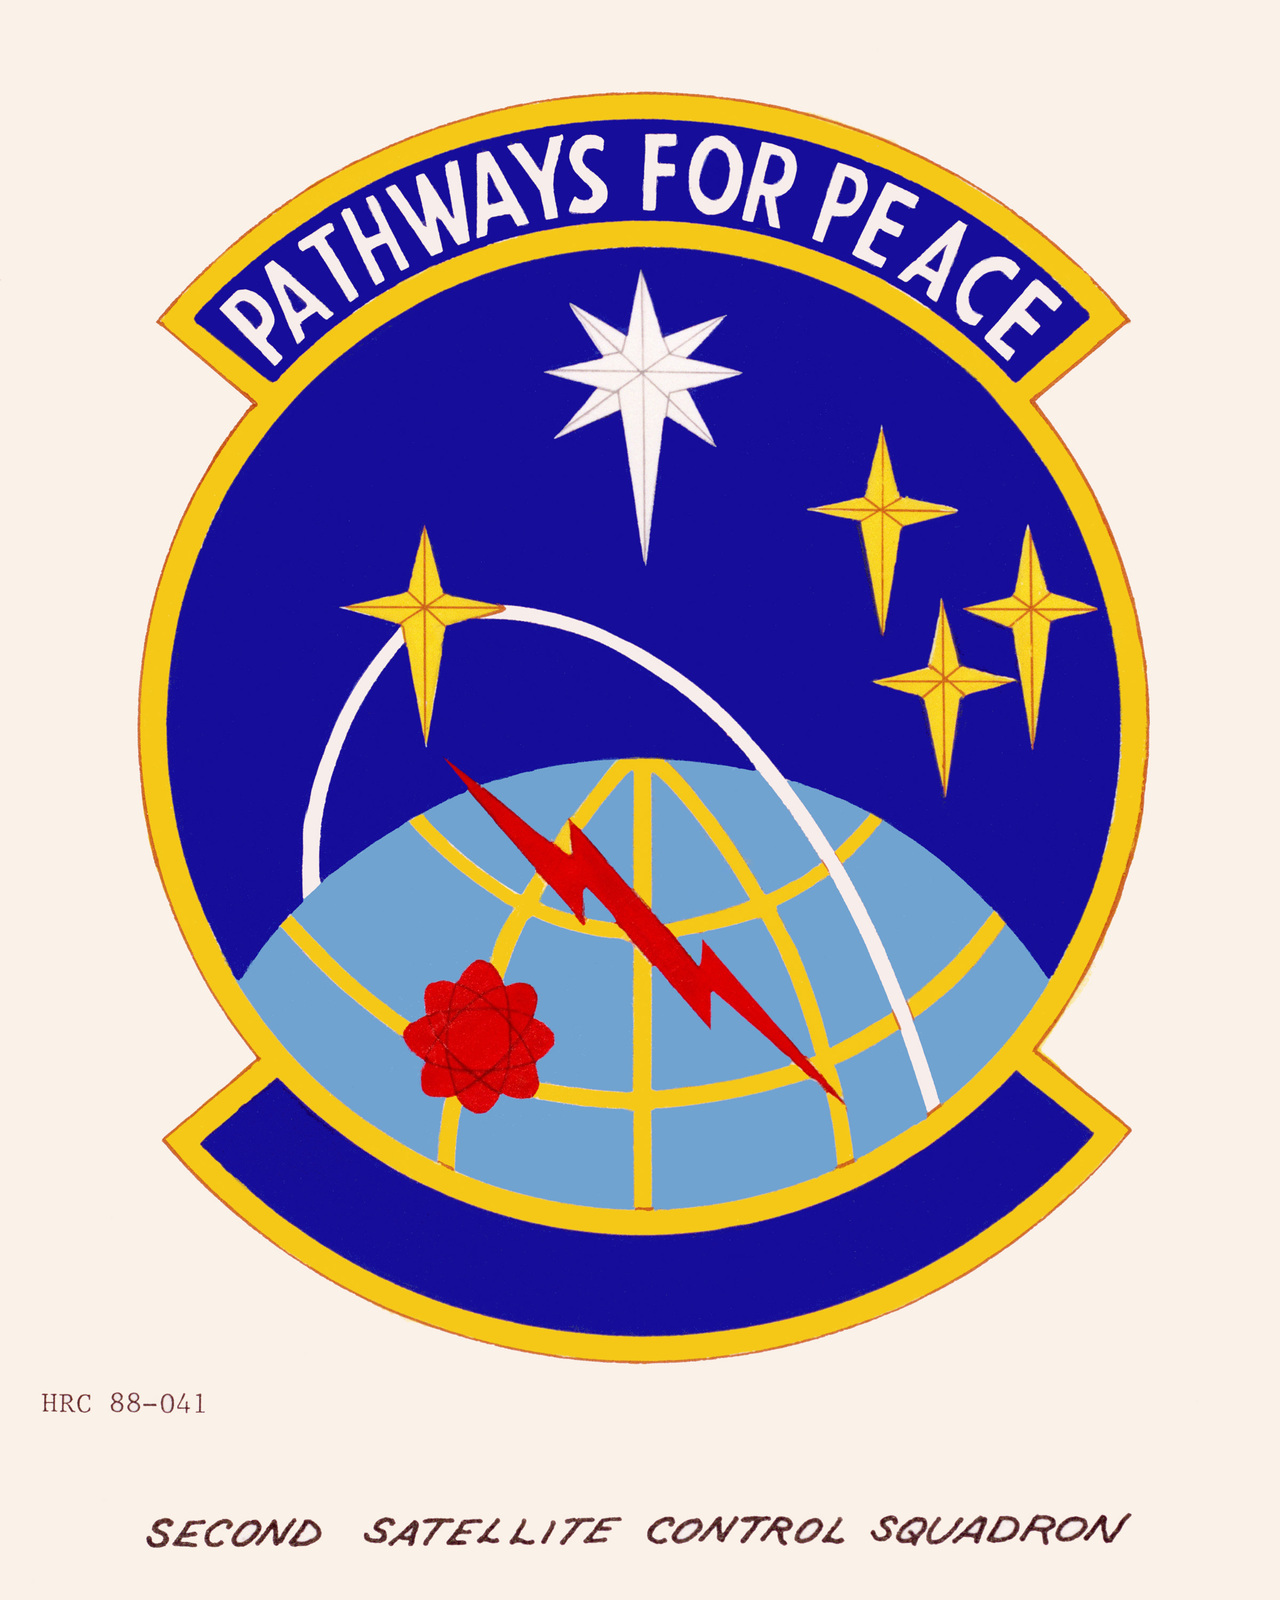 Approved insignia for:  2nd Satellite Control Squadron